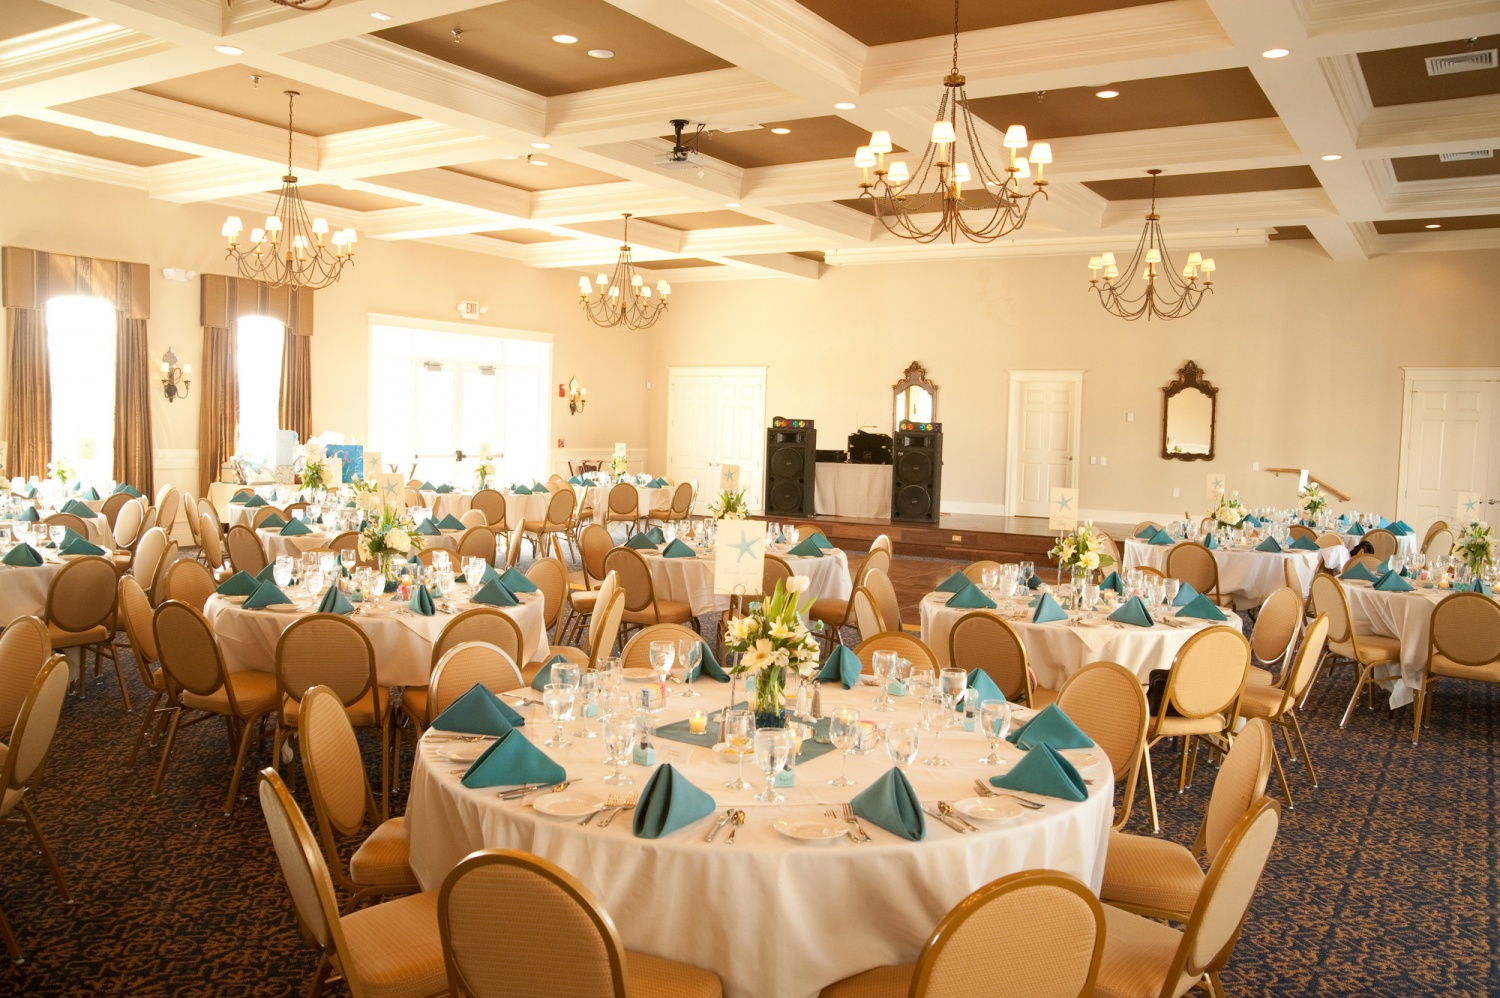 Independence hall in millsboro delaware banquet meeting independence hall clubhouse independence hall ball room junglespirit Image collections